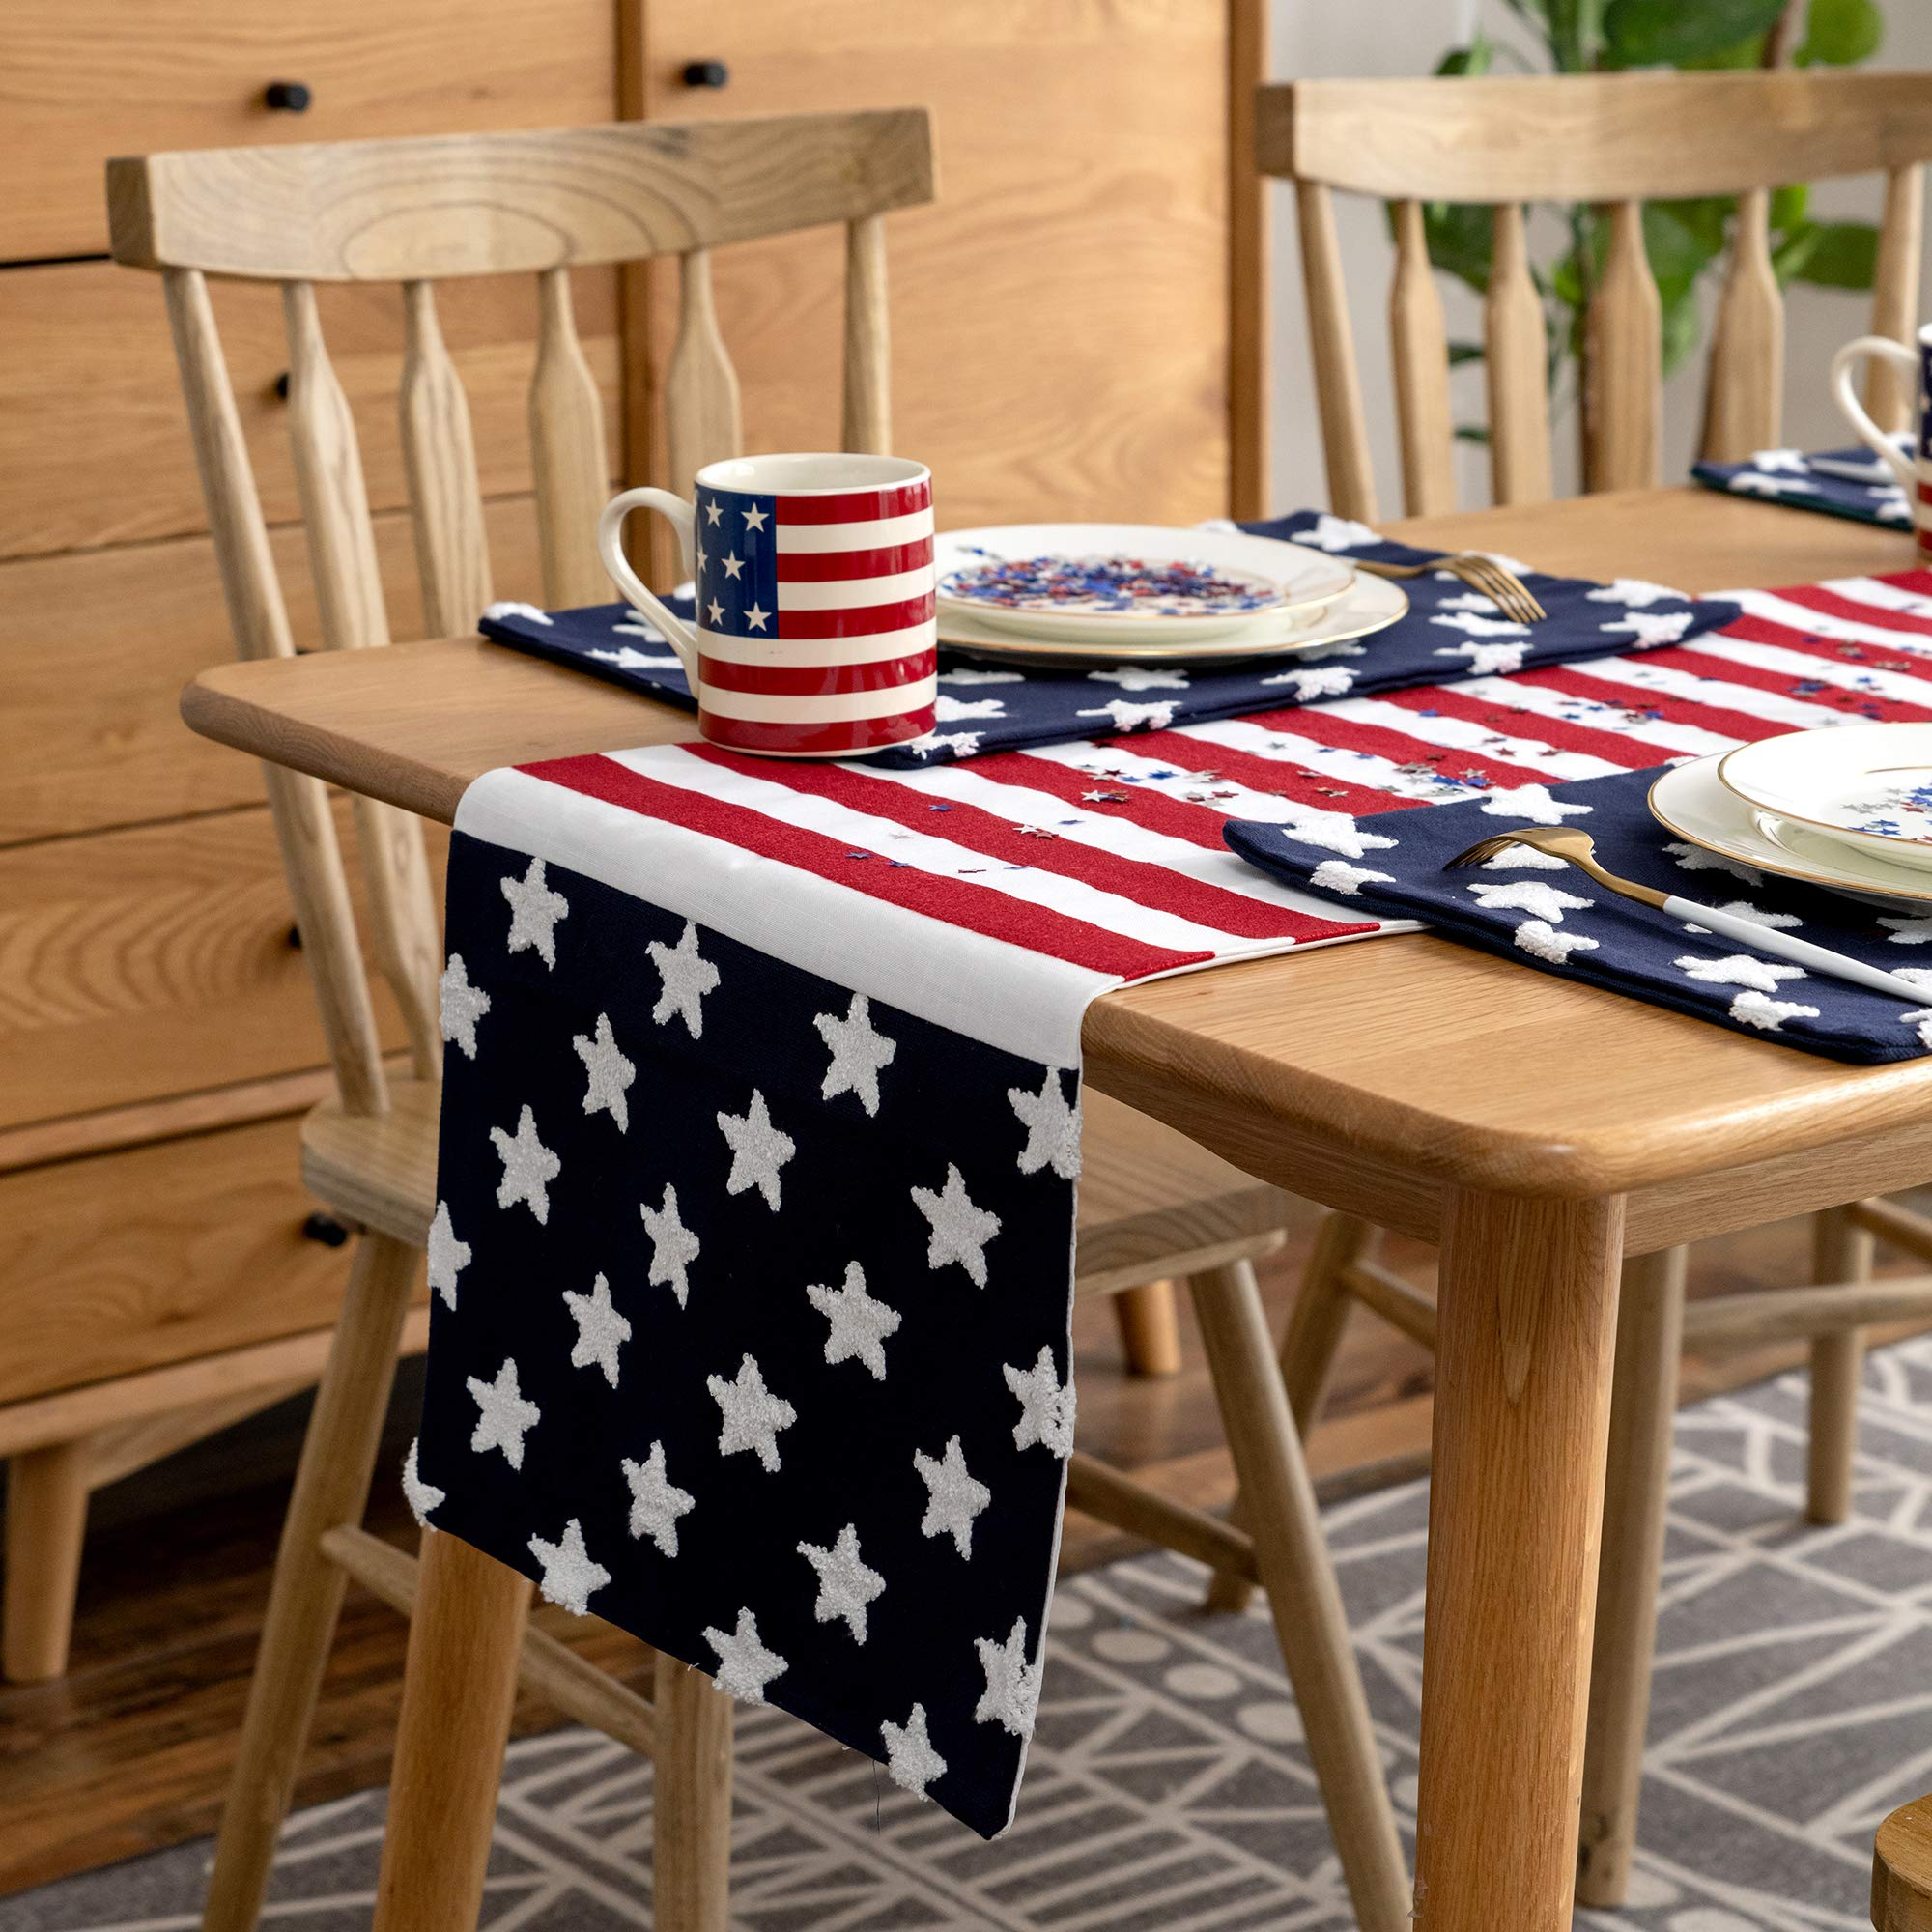 Cassiel Home 4th of July Independence Day Table Runner 14x72| Patriotic Decorations Embroidery American Stars and Stripes| Memorial Day Flag Day Patriotic Day Veterans Day